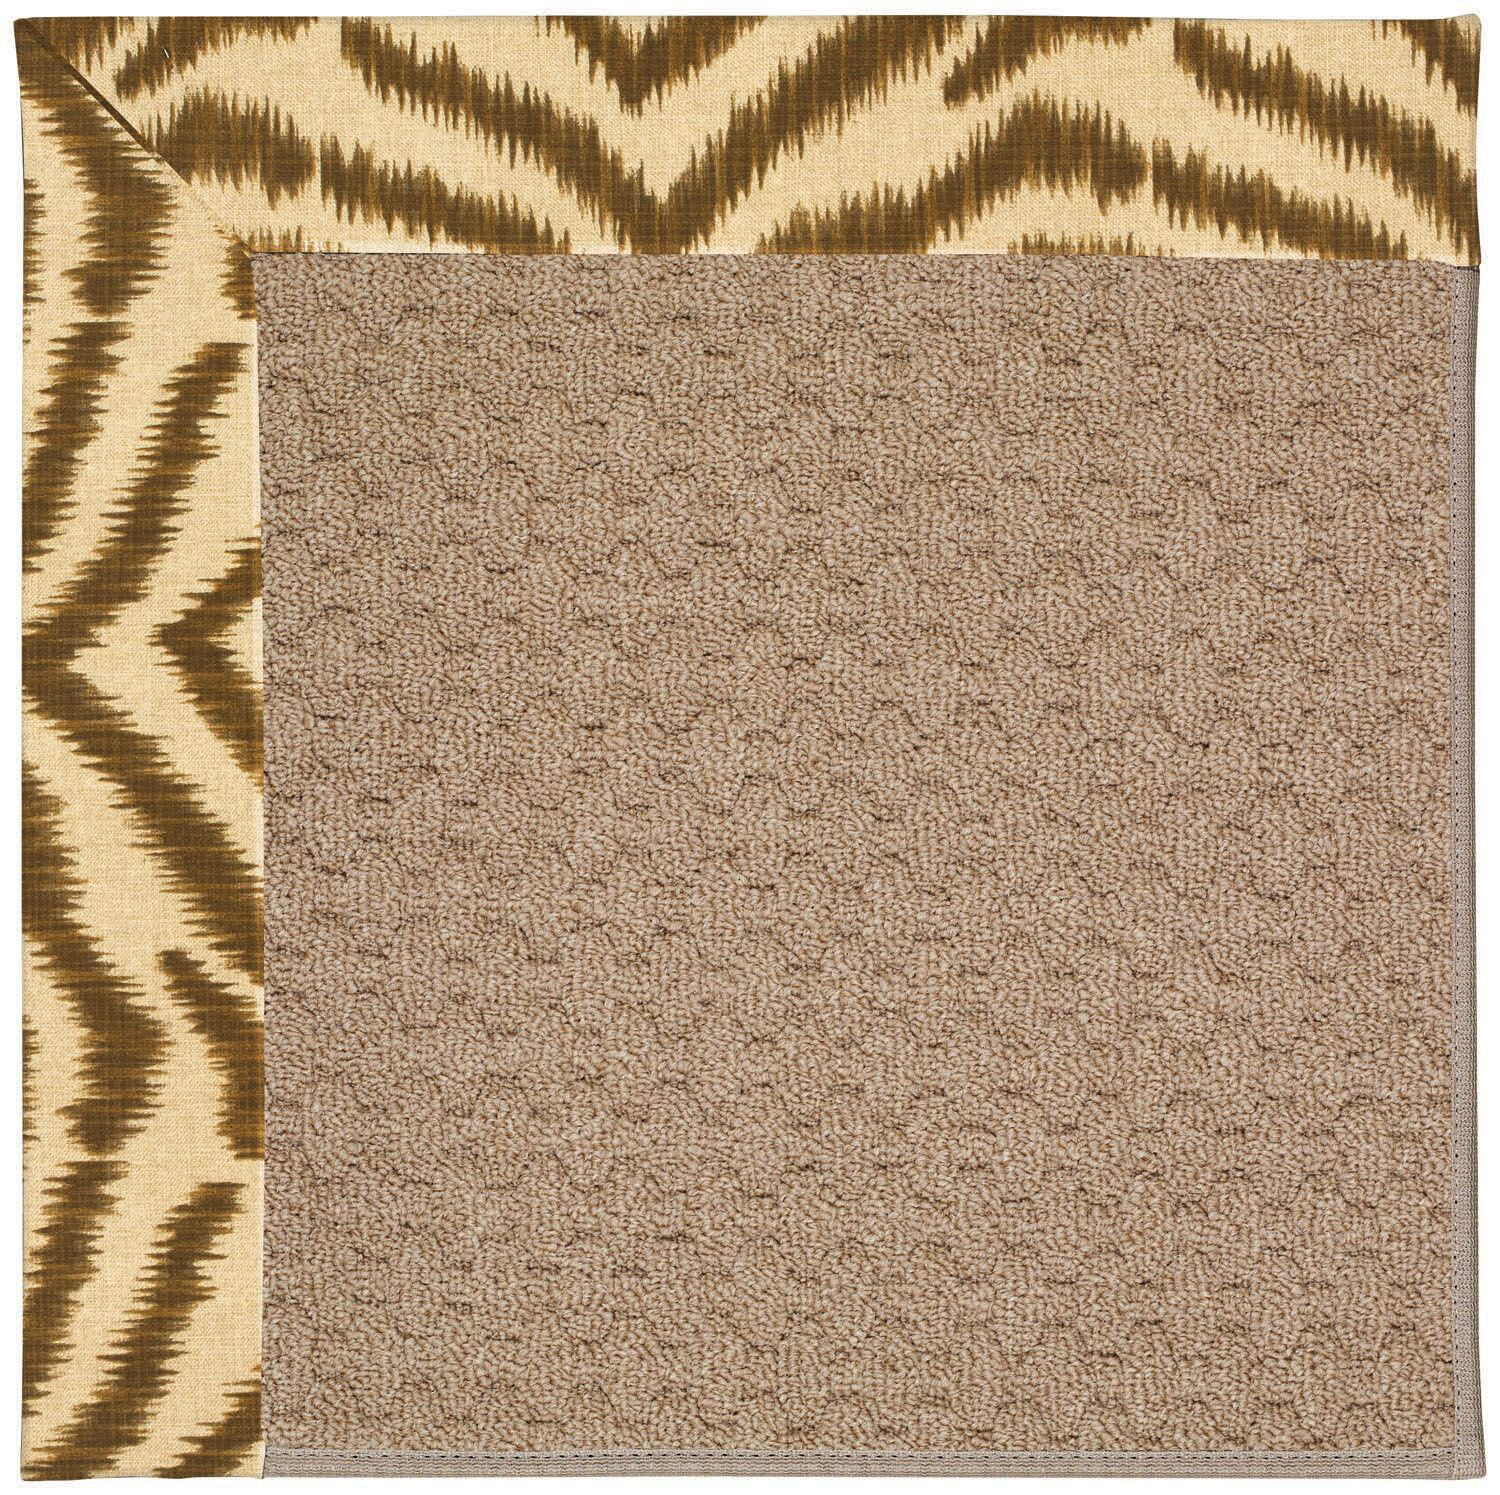 Lisle Machine Woven Indoor/Outdoor Area Rug Rug Size: Rectangle 9' x 12'